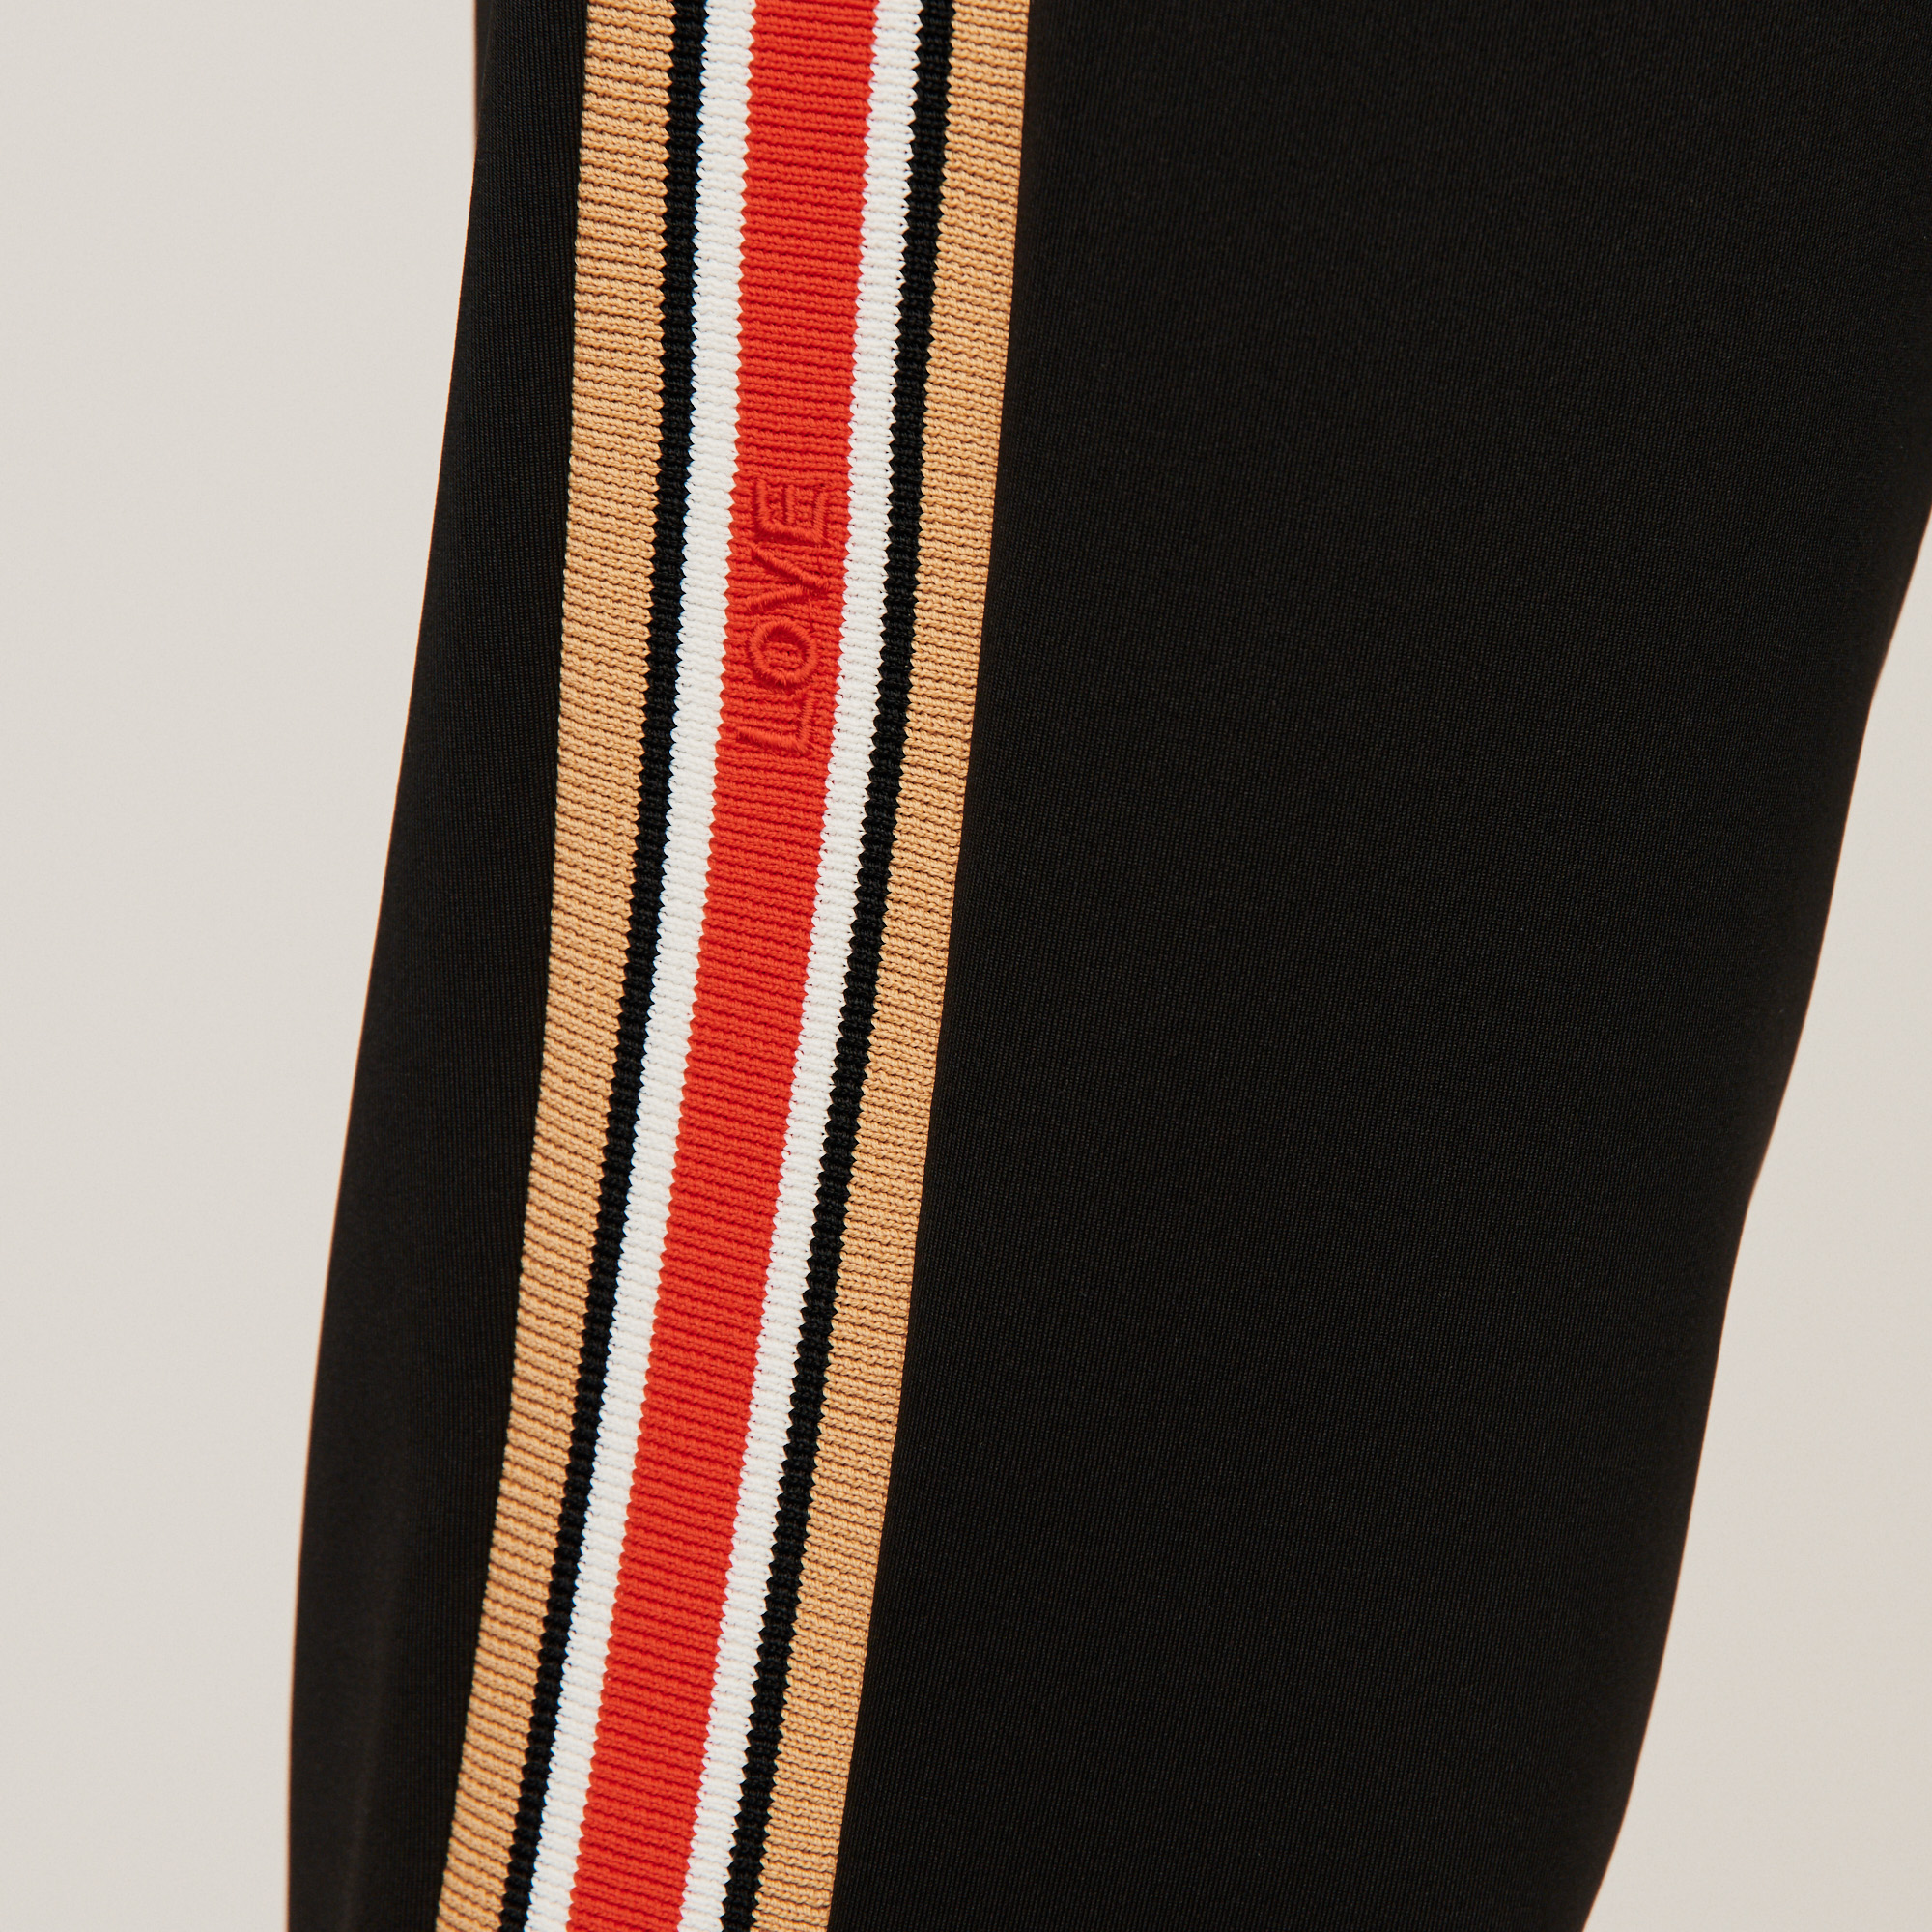 Contrasting stripes jogging pants - Black